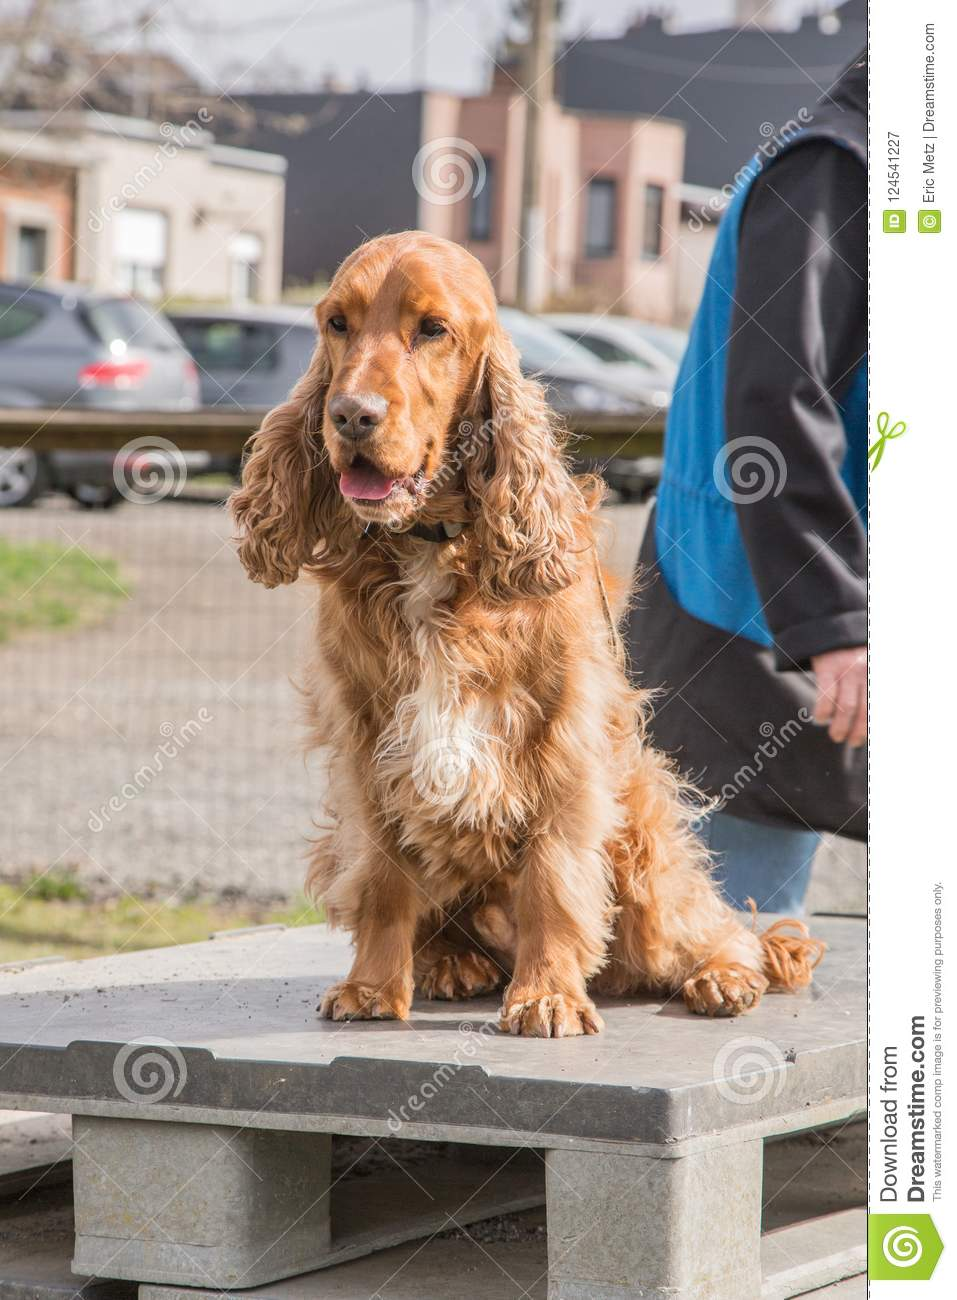 Simply excellent adult english cocker spaniel remarkable